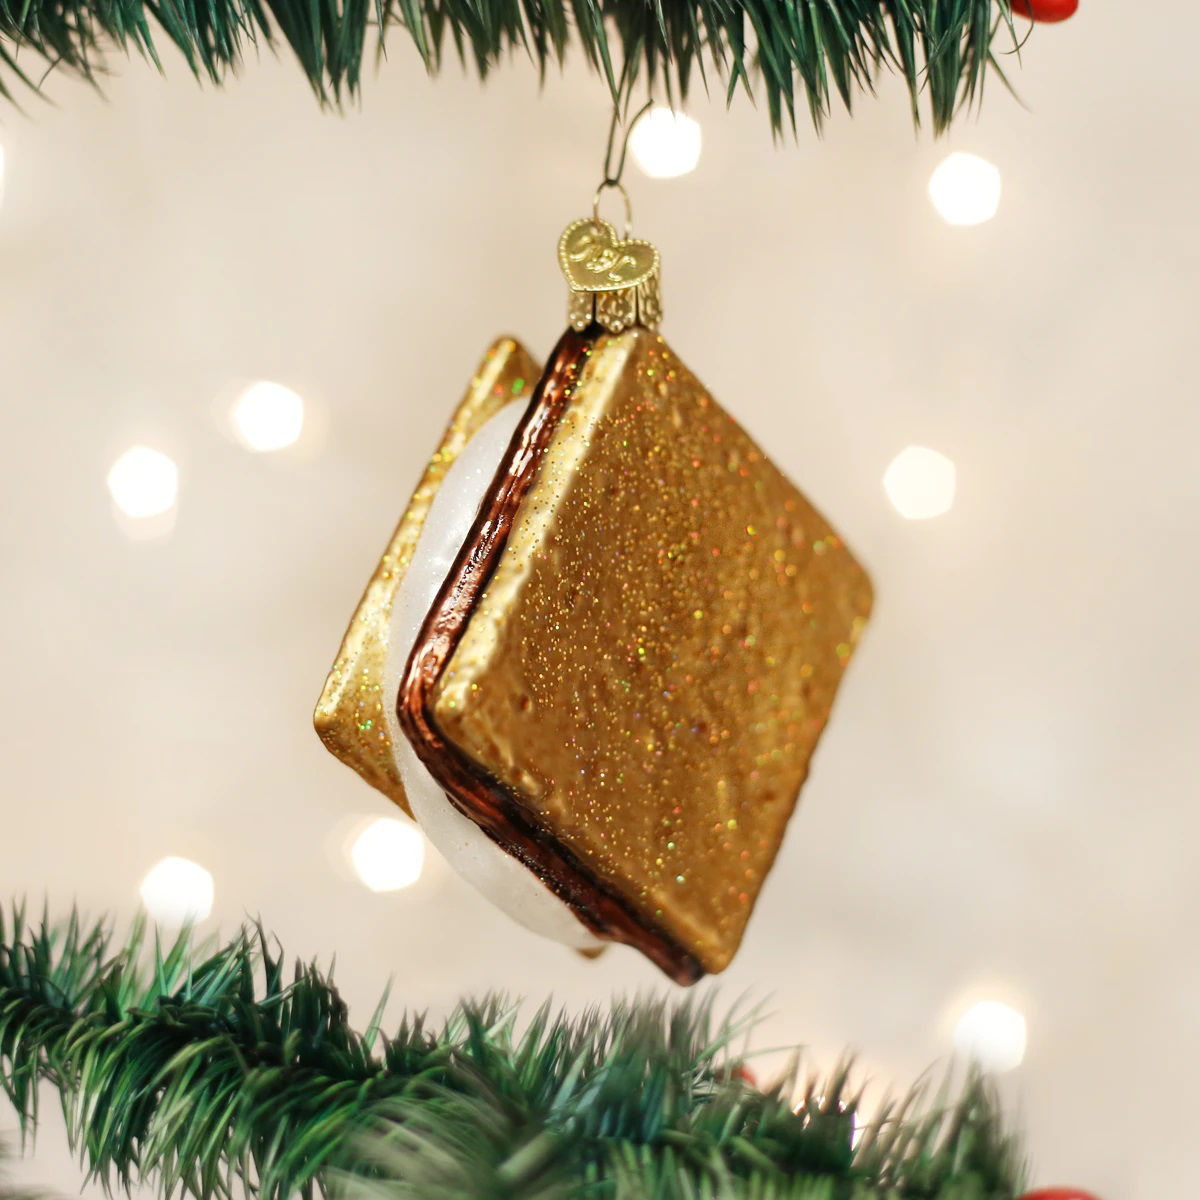 S'more Ornament by Old World Christmas